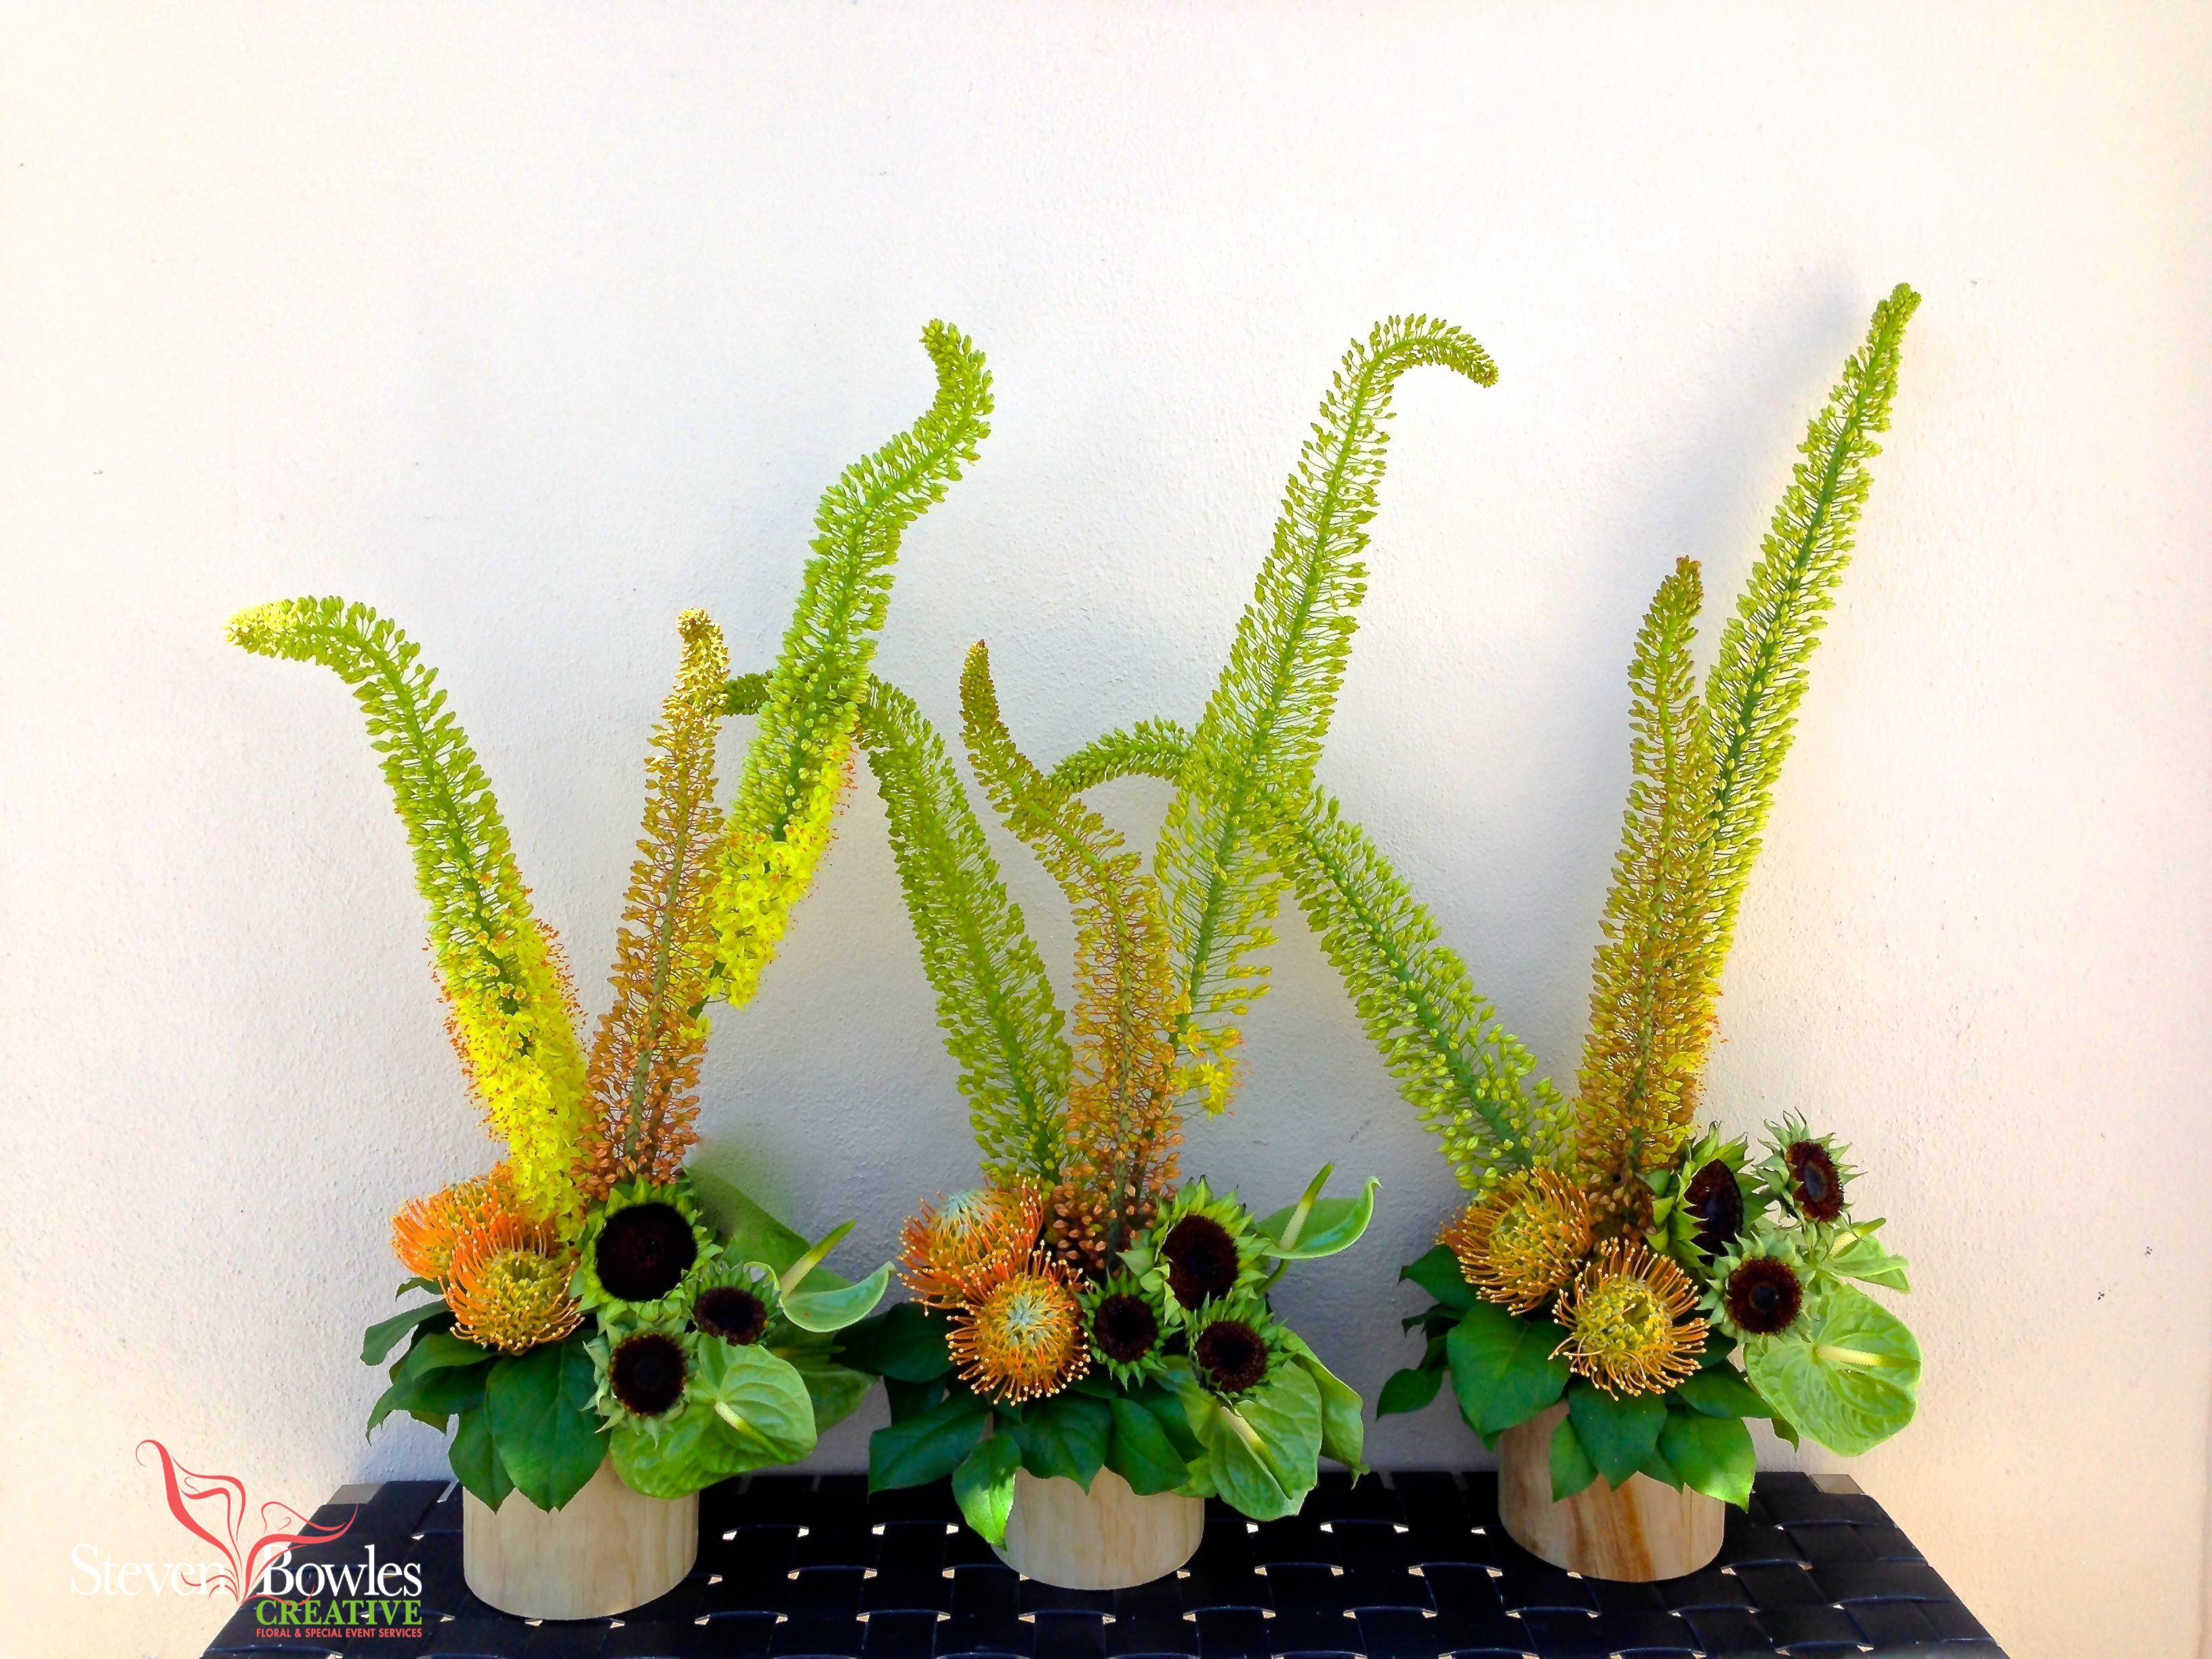 Modern Flower Arrangements Of Eremurus Protea S And Sunflowers Designed By Ste Hotel Flower Arrangements Corporate Flowers Flower Arrangements Center Pieces,How To Keep A House Clean With A Big Family